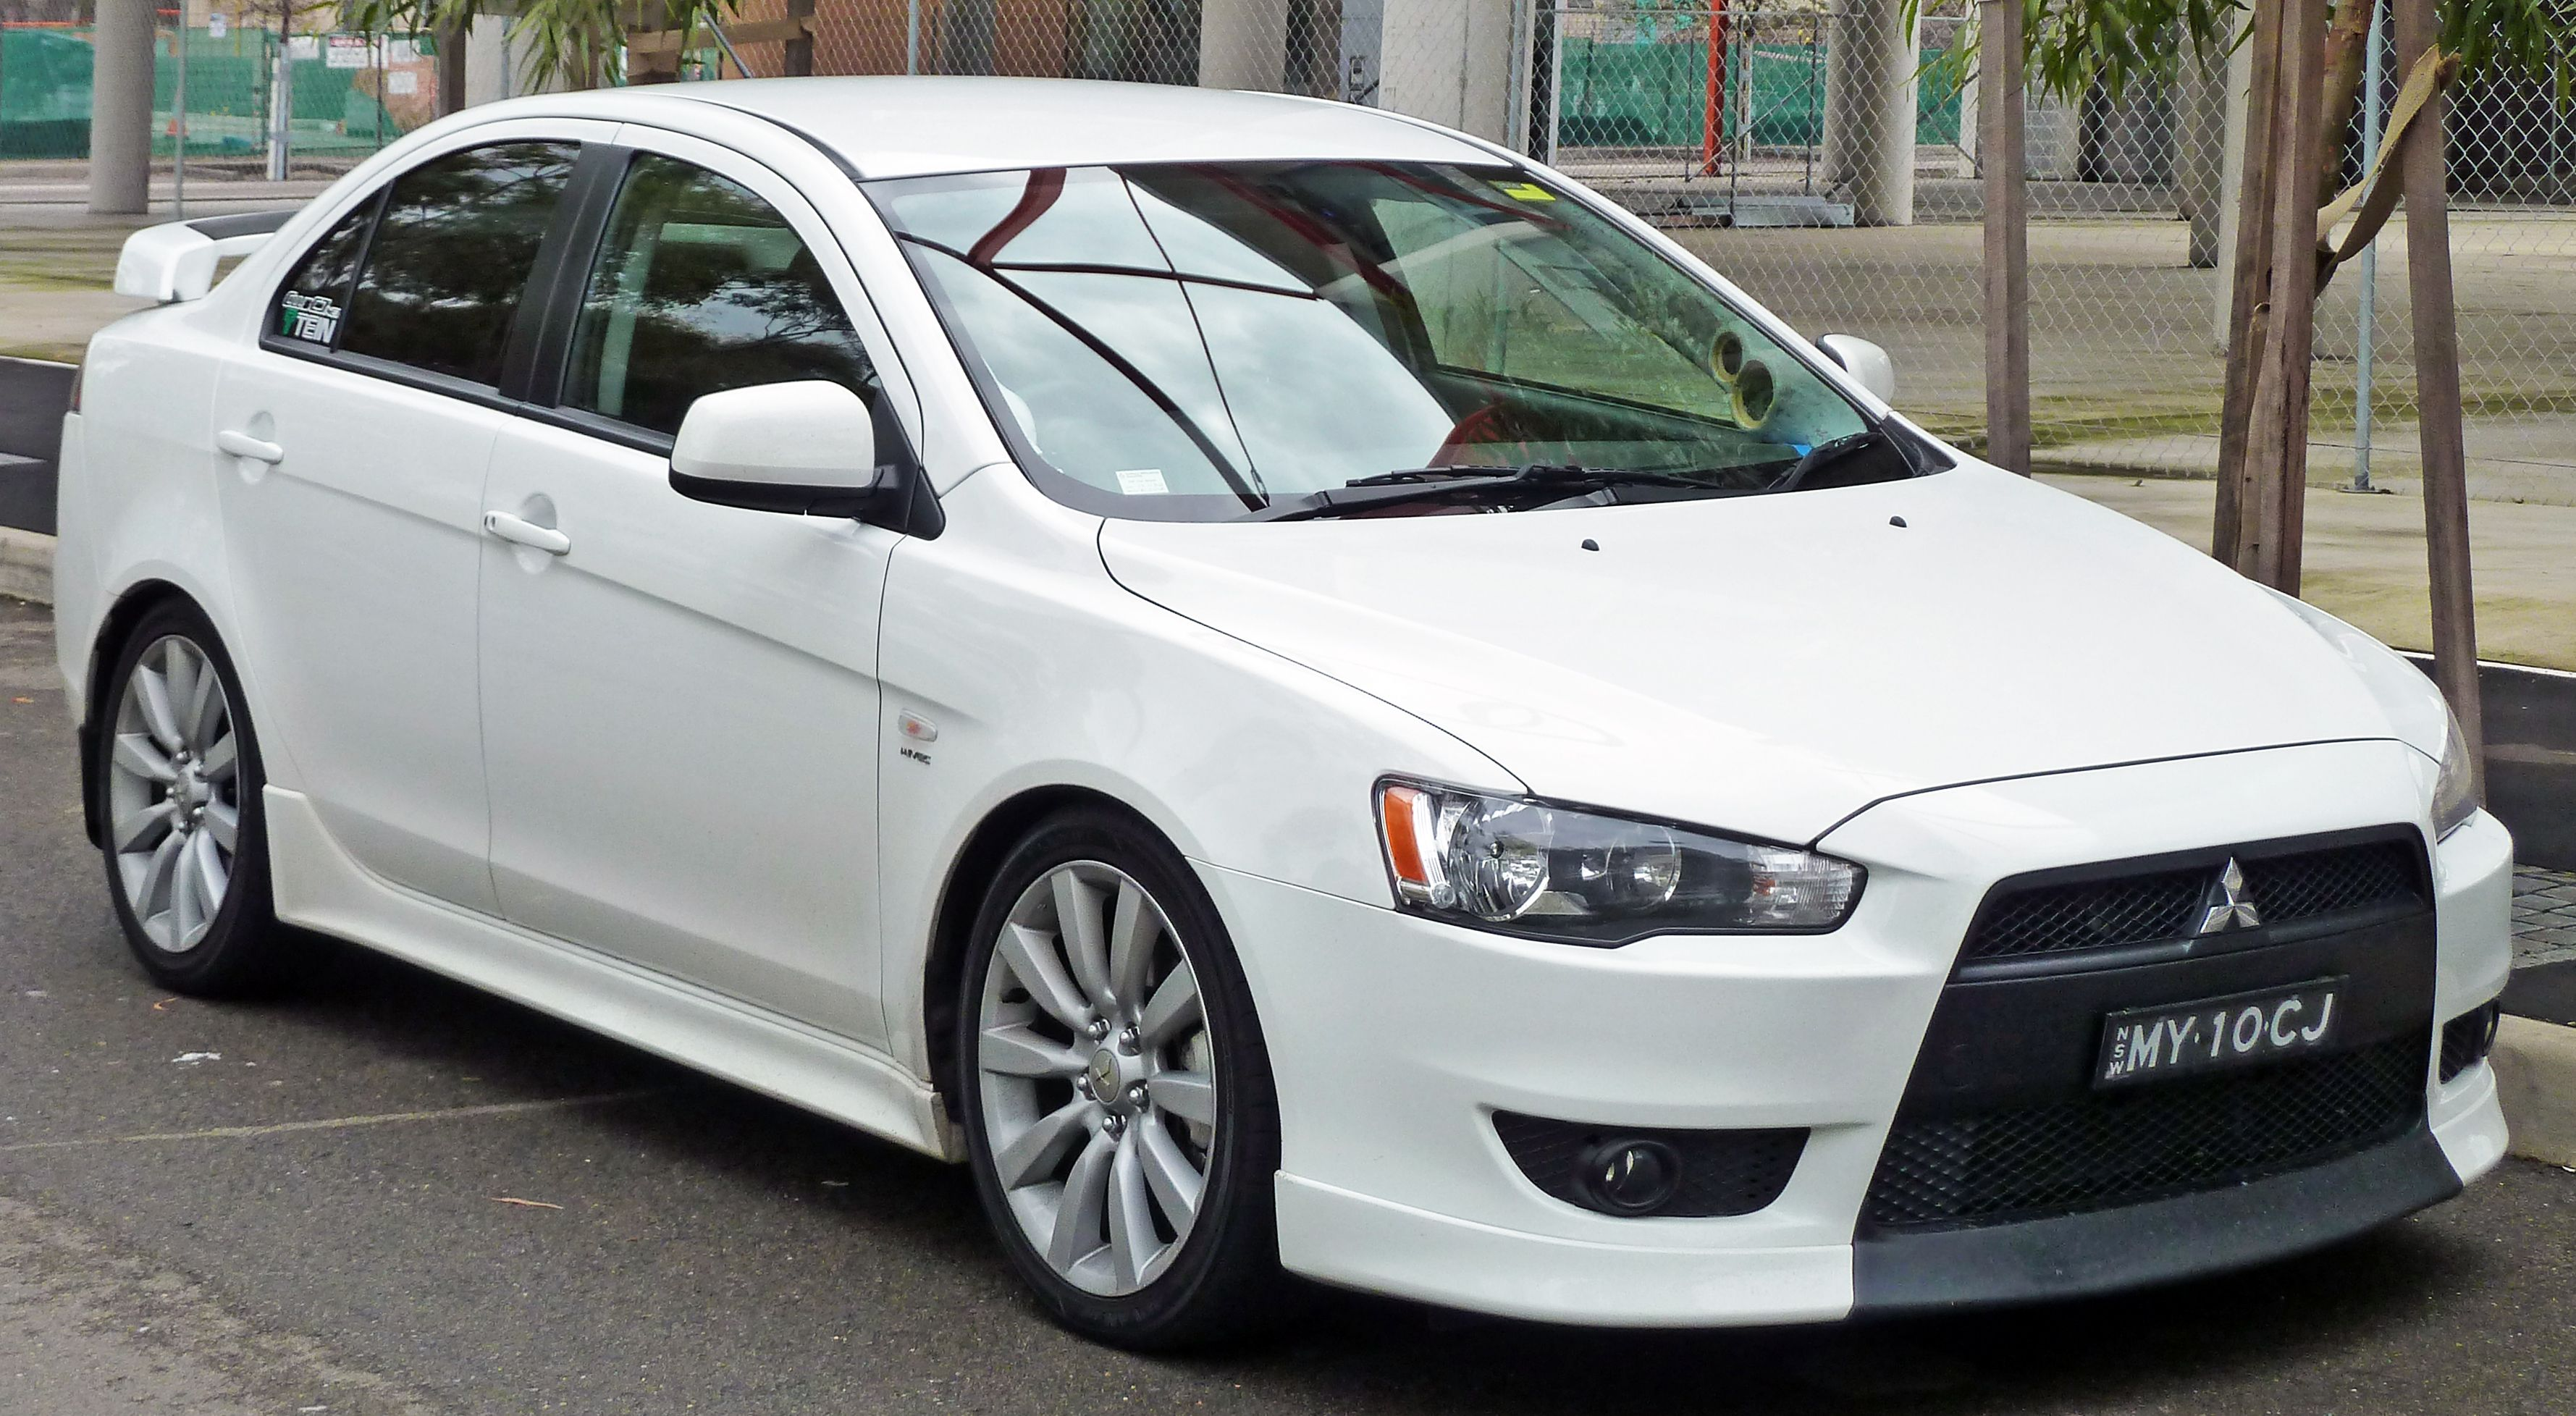 cars lancer extras evolution sale midwest forums sss gsr for warranty wi low miles fs mitsubishi